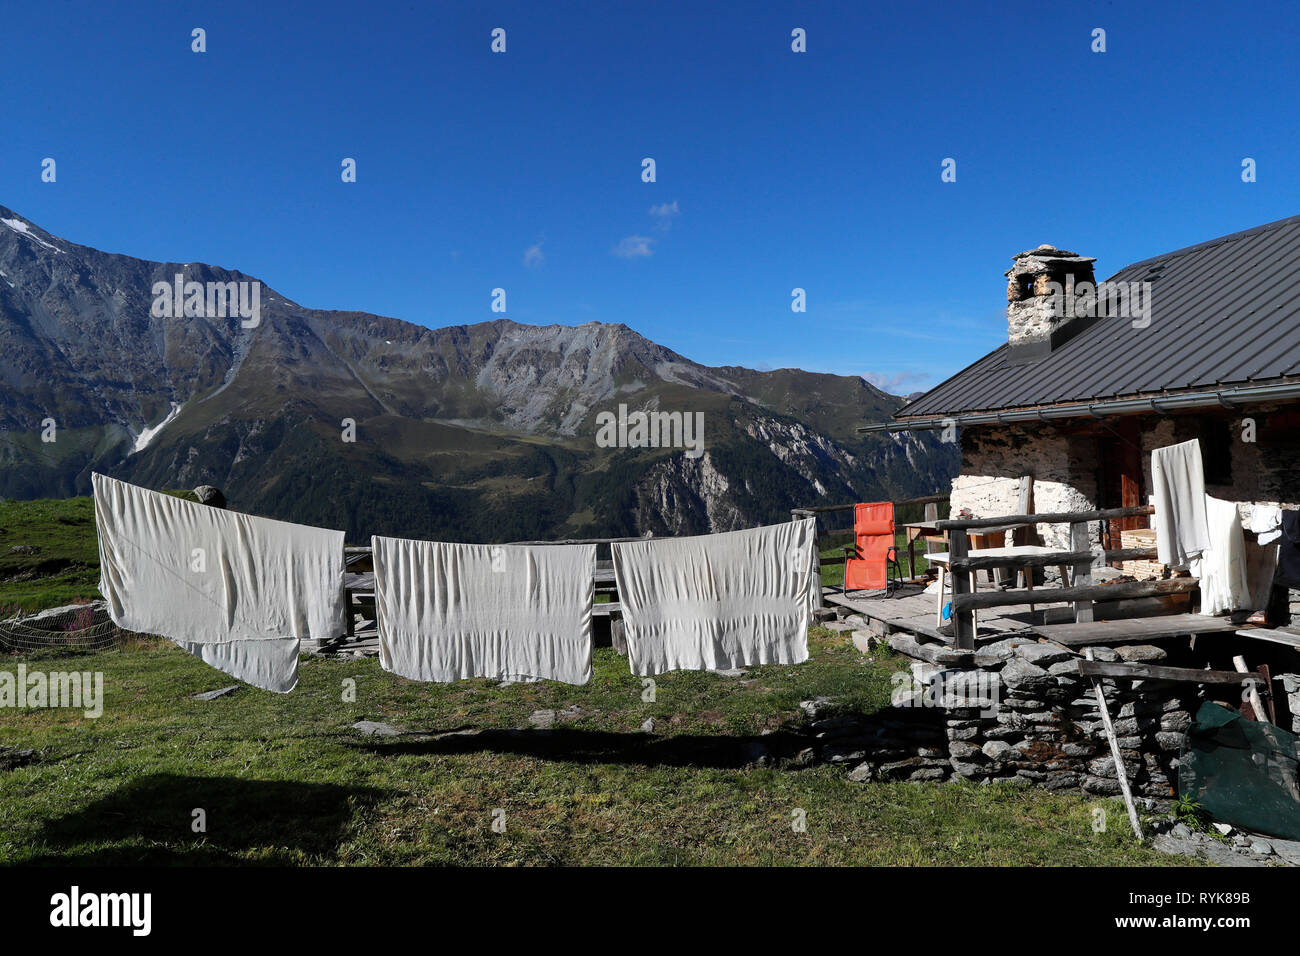 French Alps. Artisanal Beaufort cheese factory on high pastures.  Peisey Nancroix. France. - Stock Image